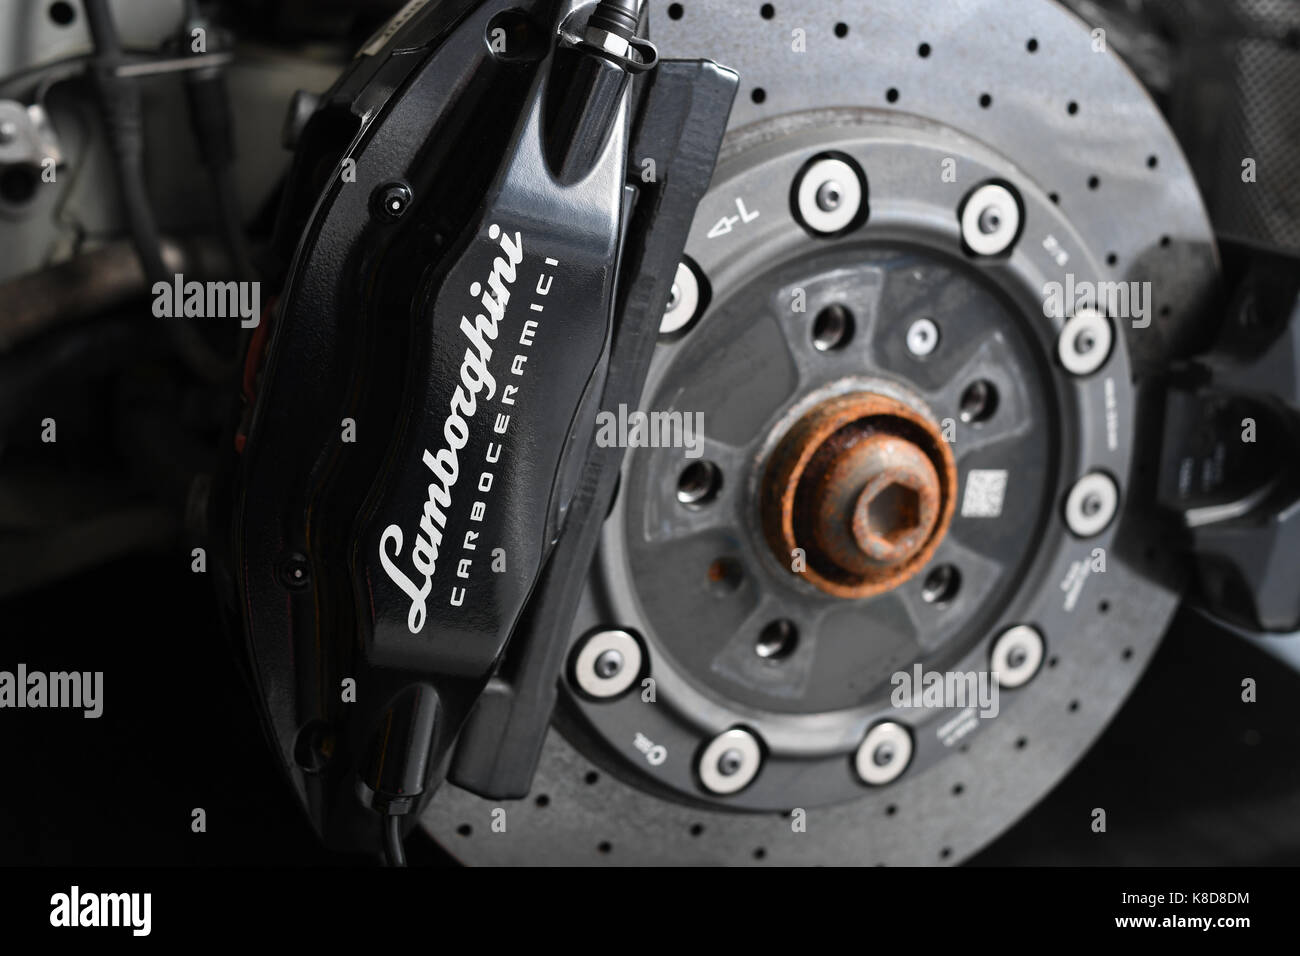 Lamborghini wheel showing Brake calliper and ceramic  disc - Stock Image